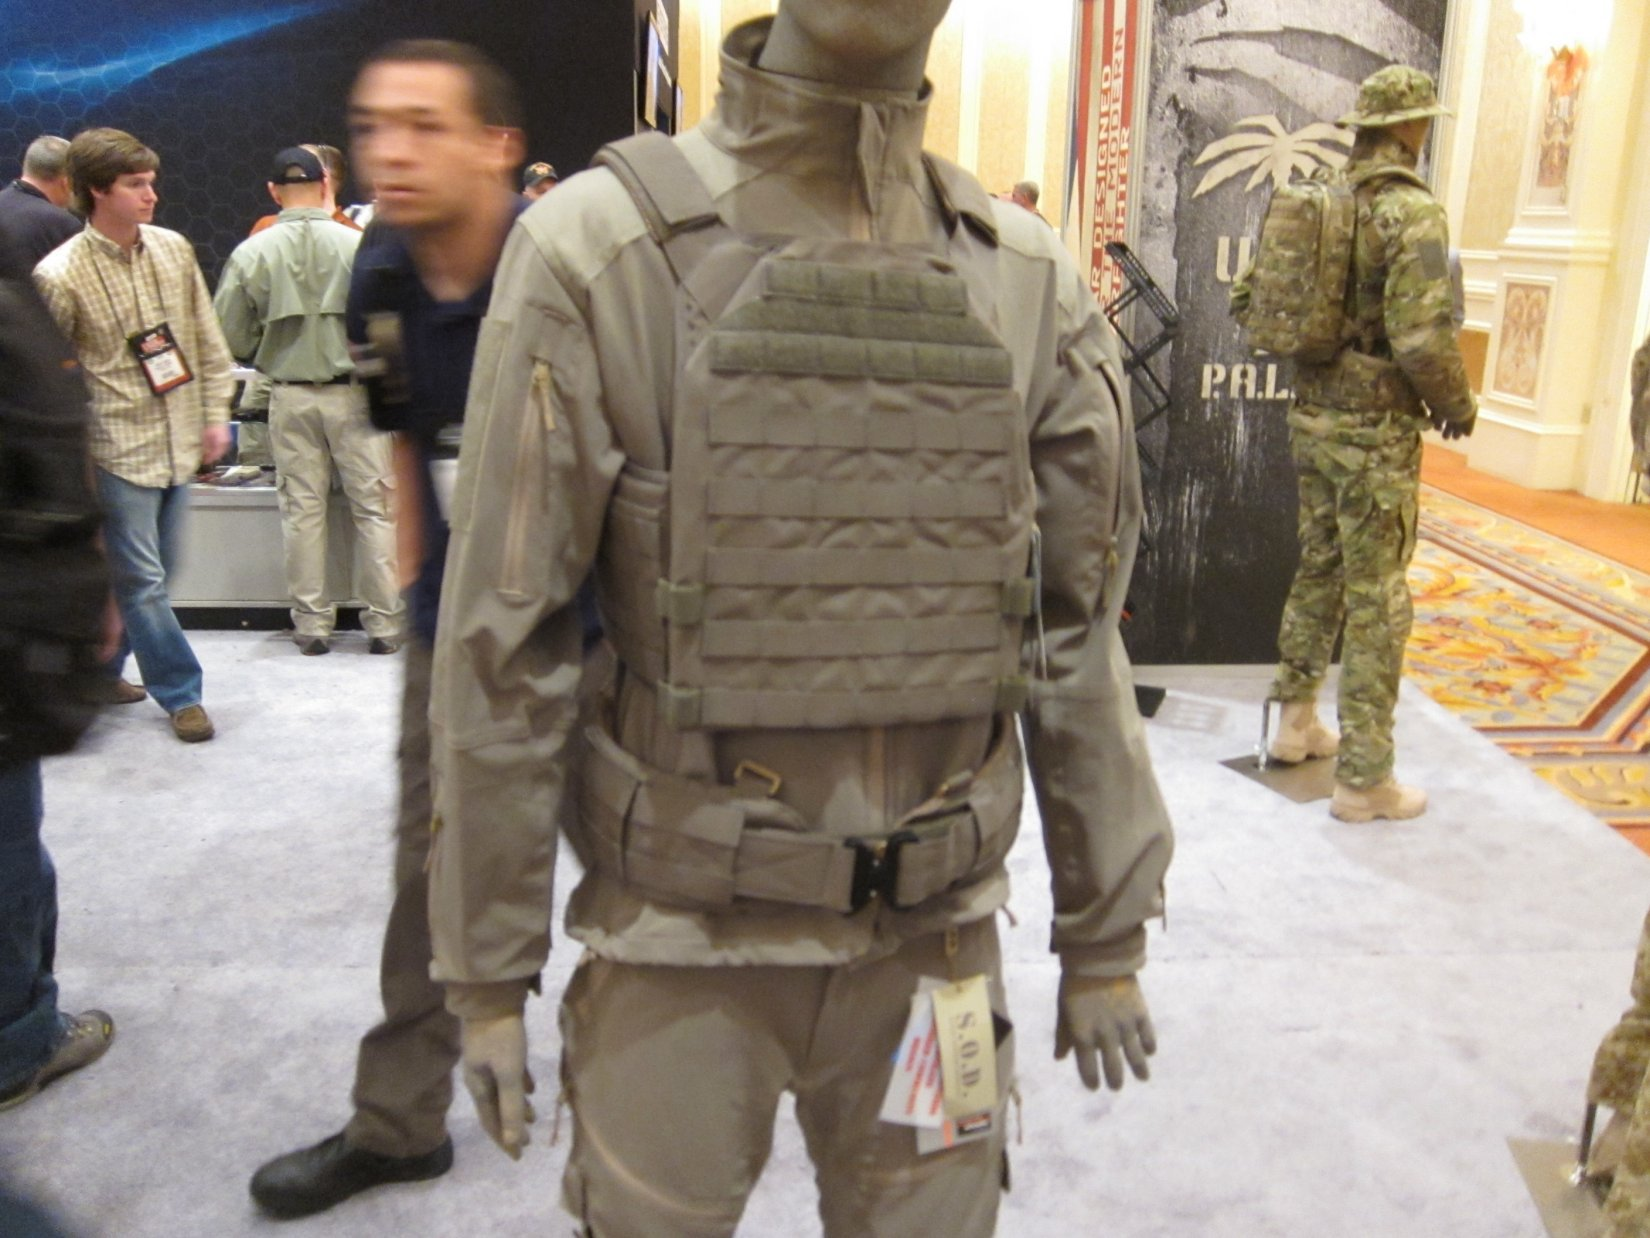 SOD Gear Special Operations Department Gear Max Valente Italian Tactical Combat Clothing TangoDown SHOT Show 2012 1 17 2012 DefenseReview.com DR 2 SOD Gear/SOD USA Stealth ADP Battle Jacket and Pants Made with Schoeller Performance Fabric: High Tech Combat Clothing for Military Special Operations Forces (SOF) and Civilian Tactical Shooters